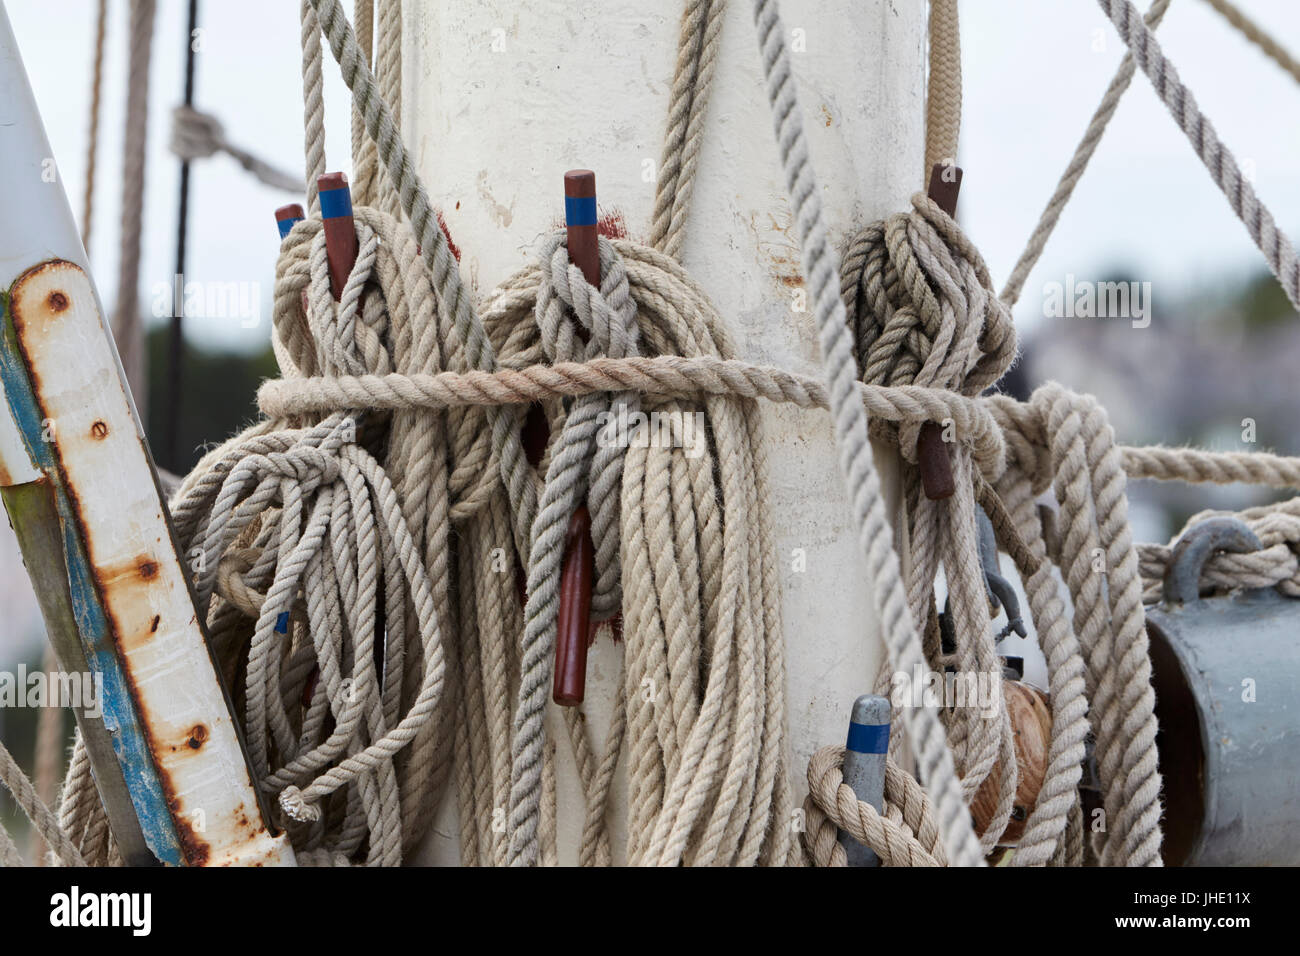 sail ropes tied up to the mast on a sailing ship - Stock Image